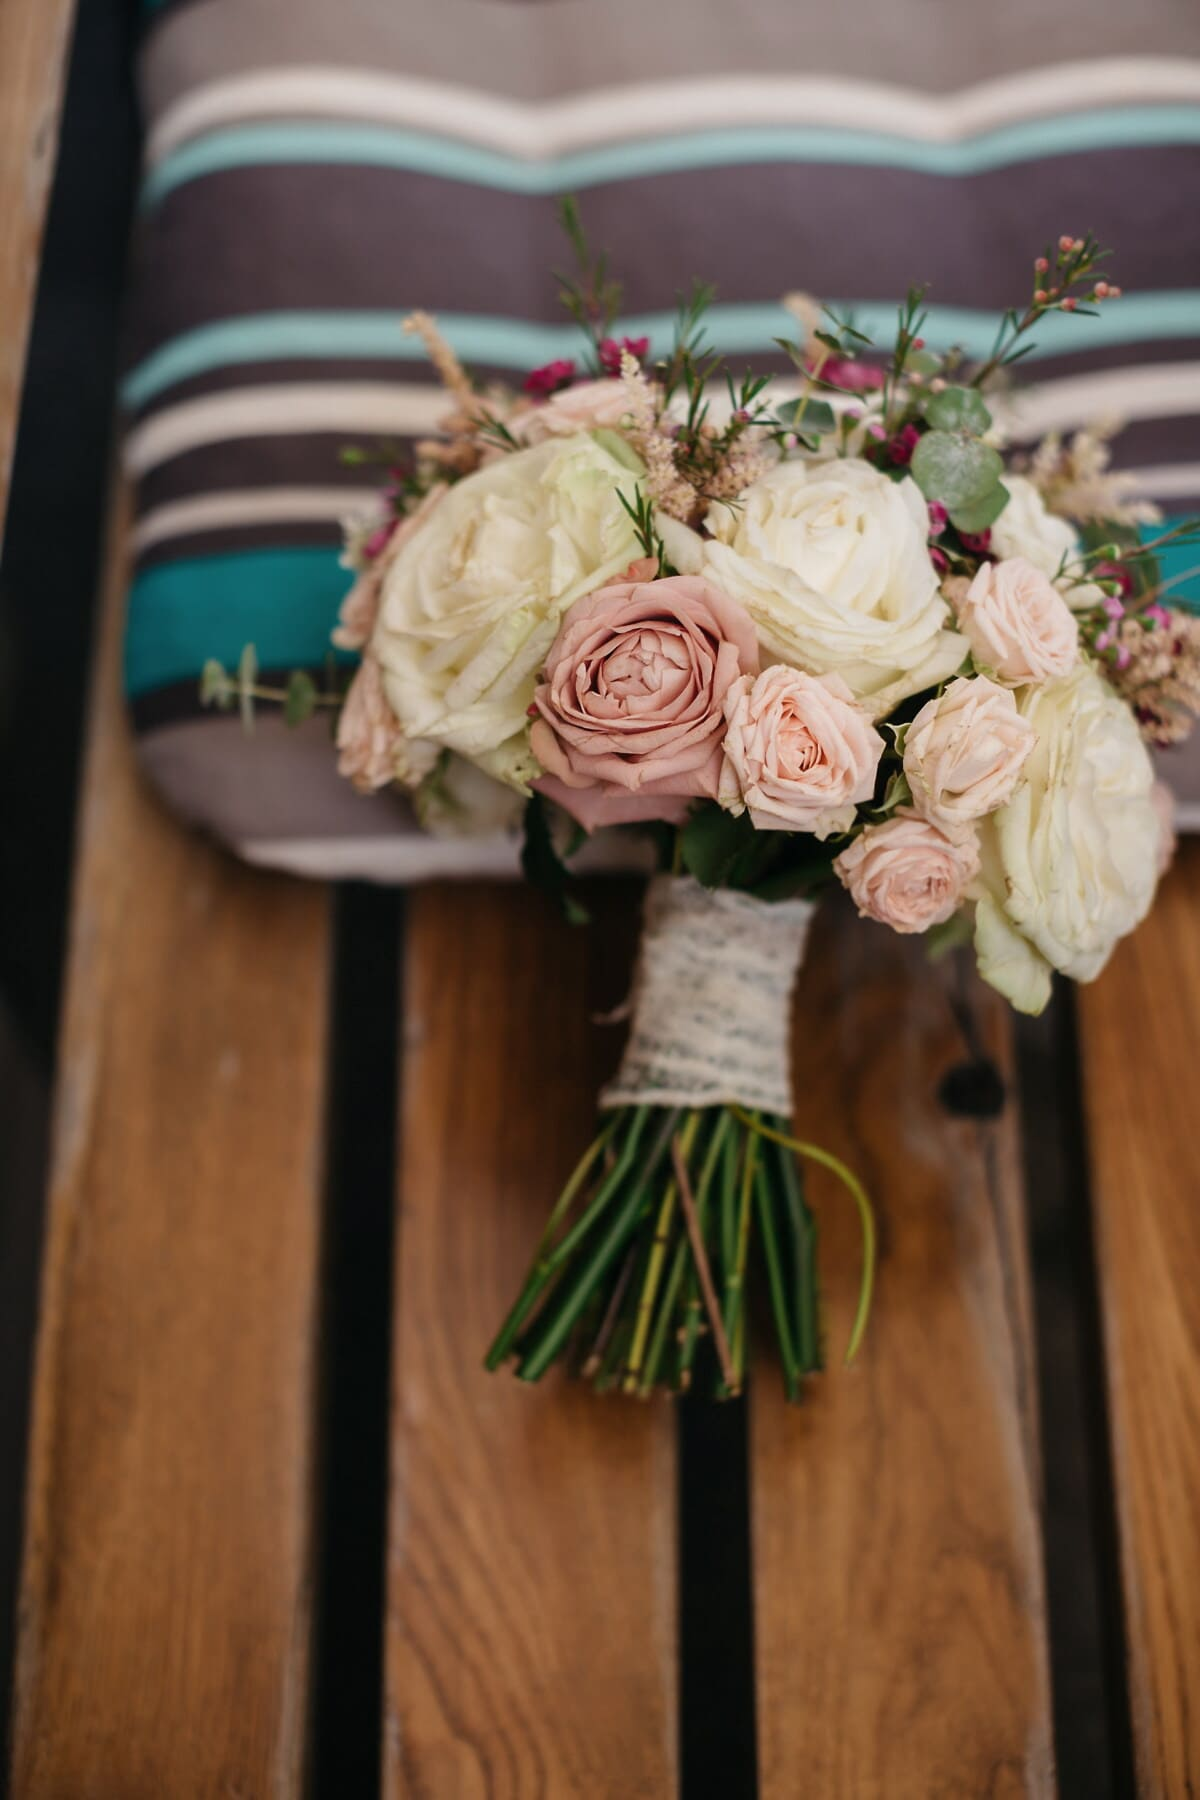 roses, pinkish, bouquet, paste, furniture, bench, pillow, wooden, love, decoration